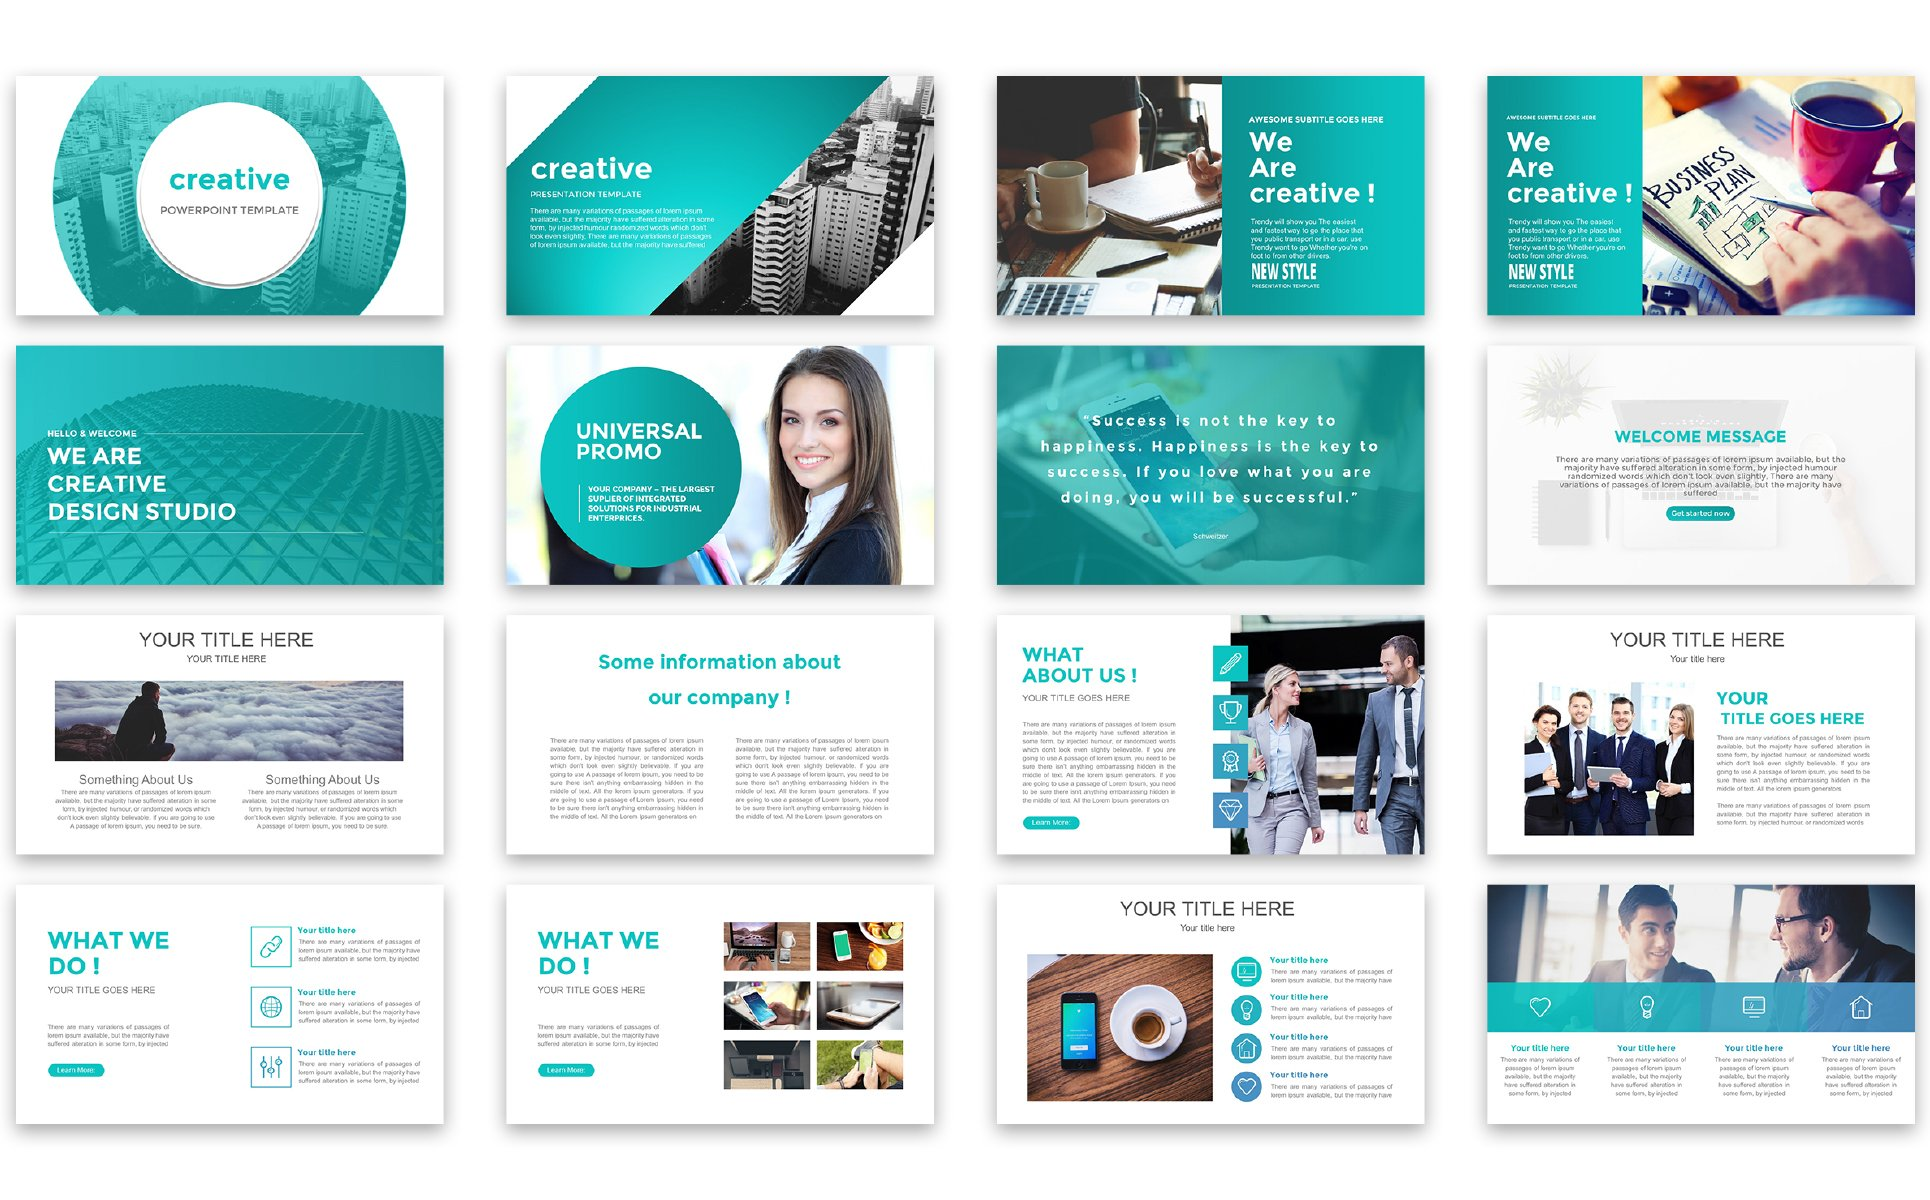 Powerpoint Create Template